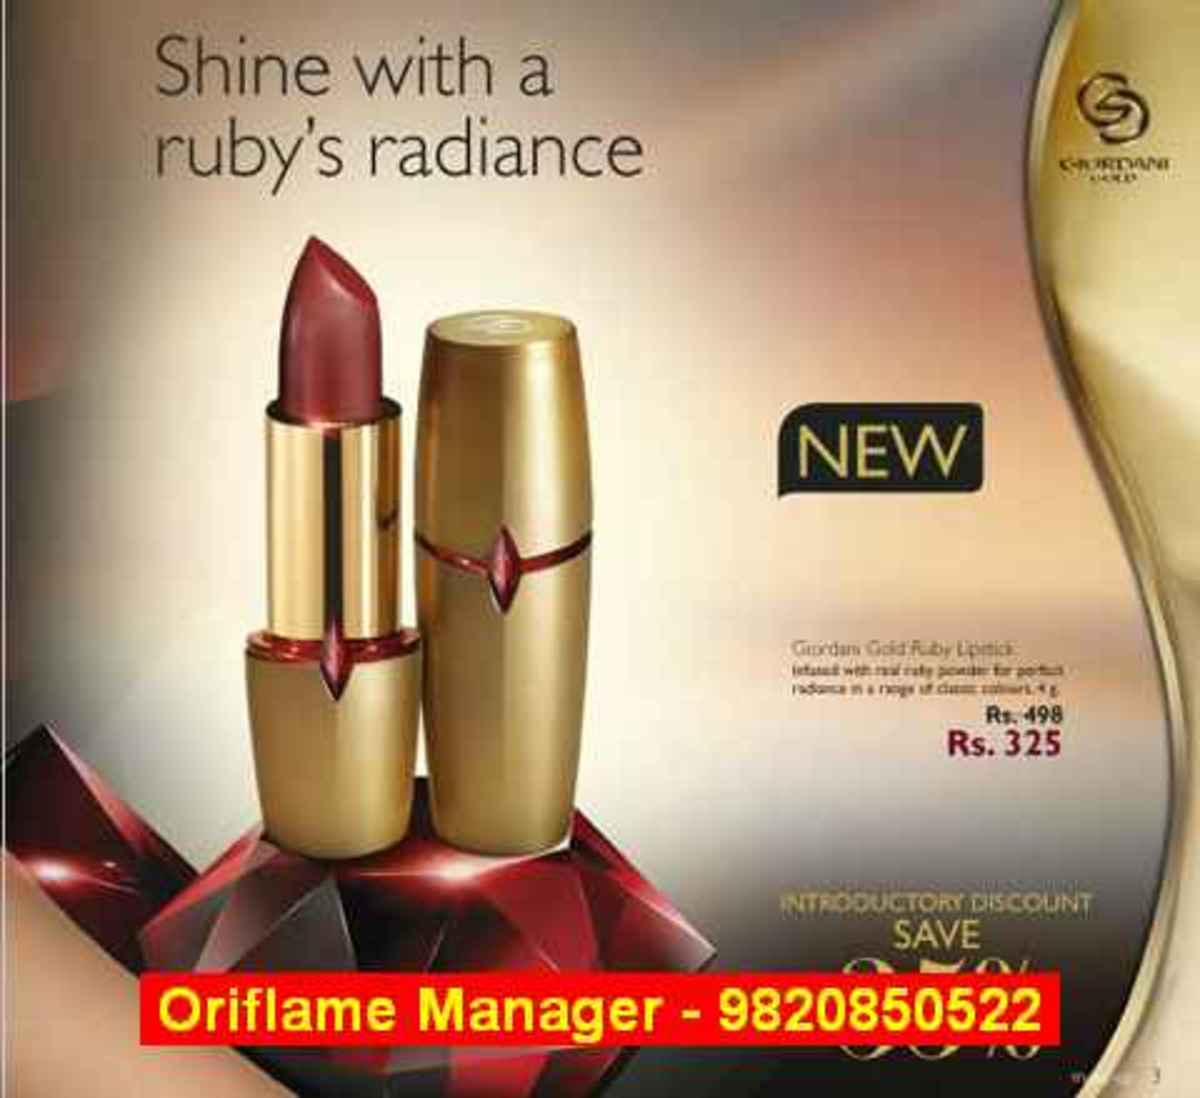 Oriflame Membership Fee and Benefits